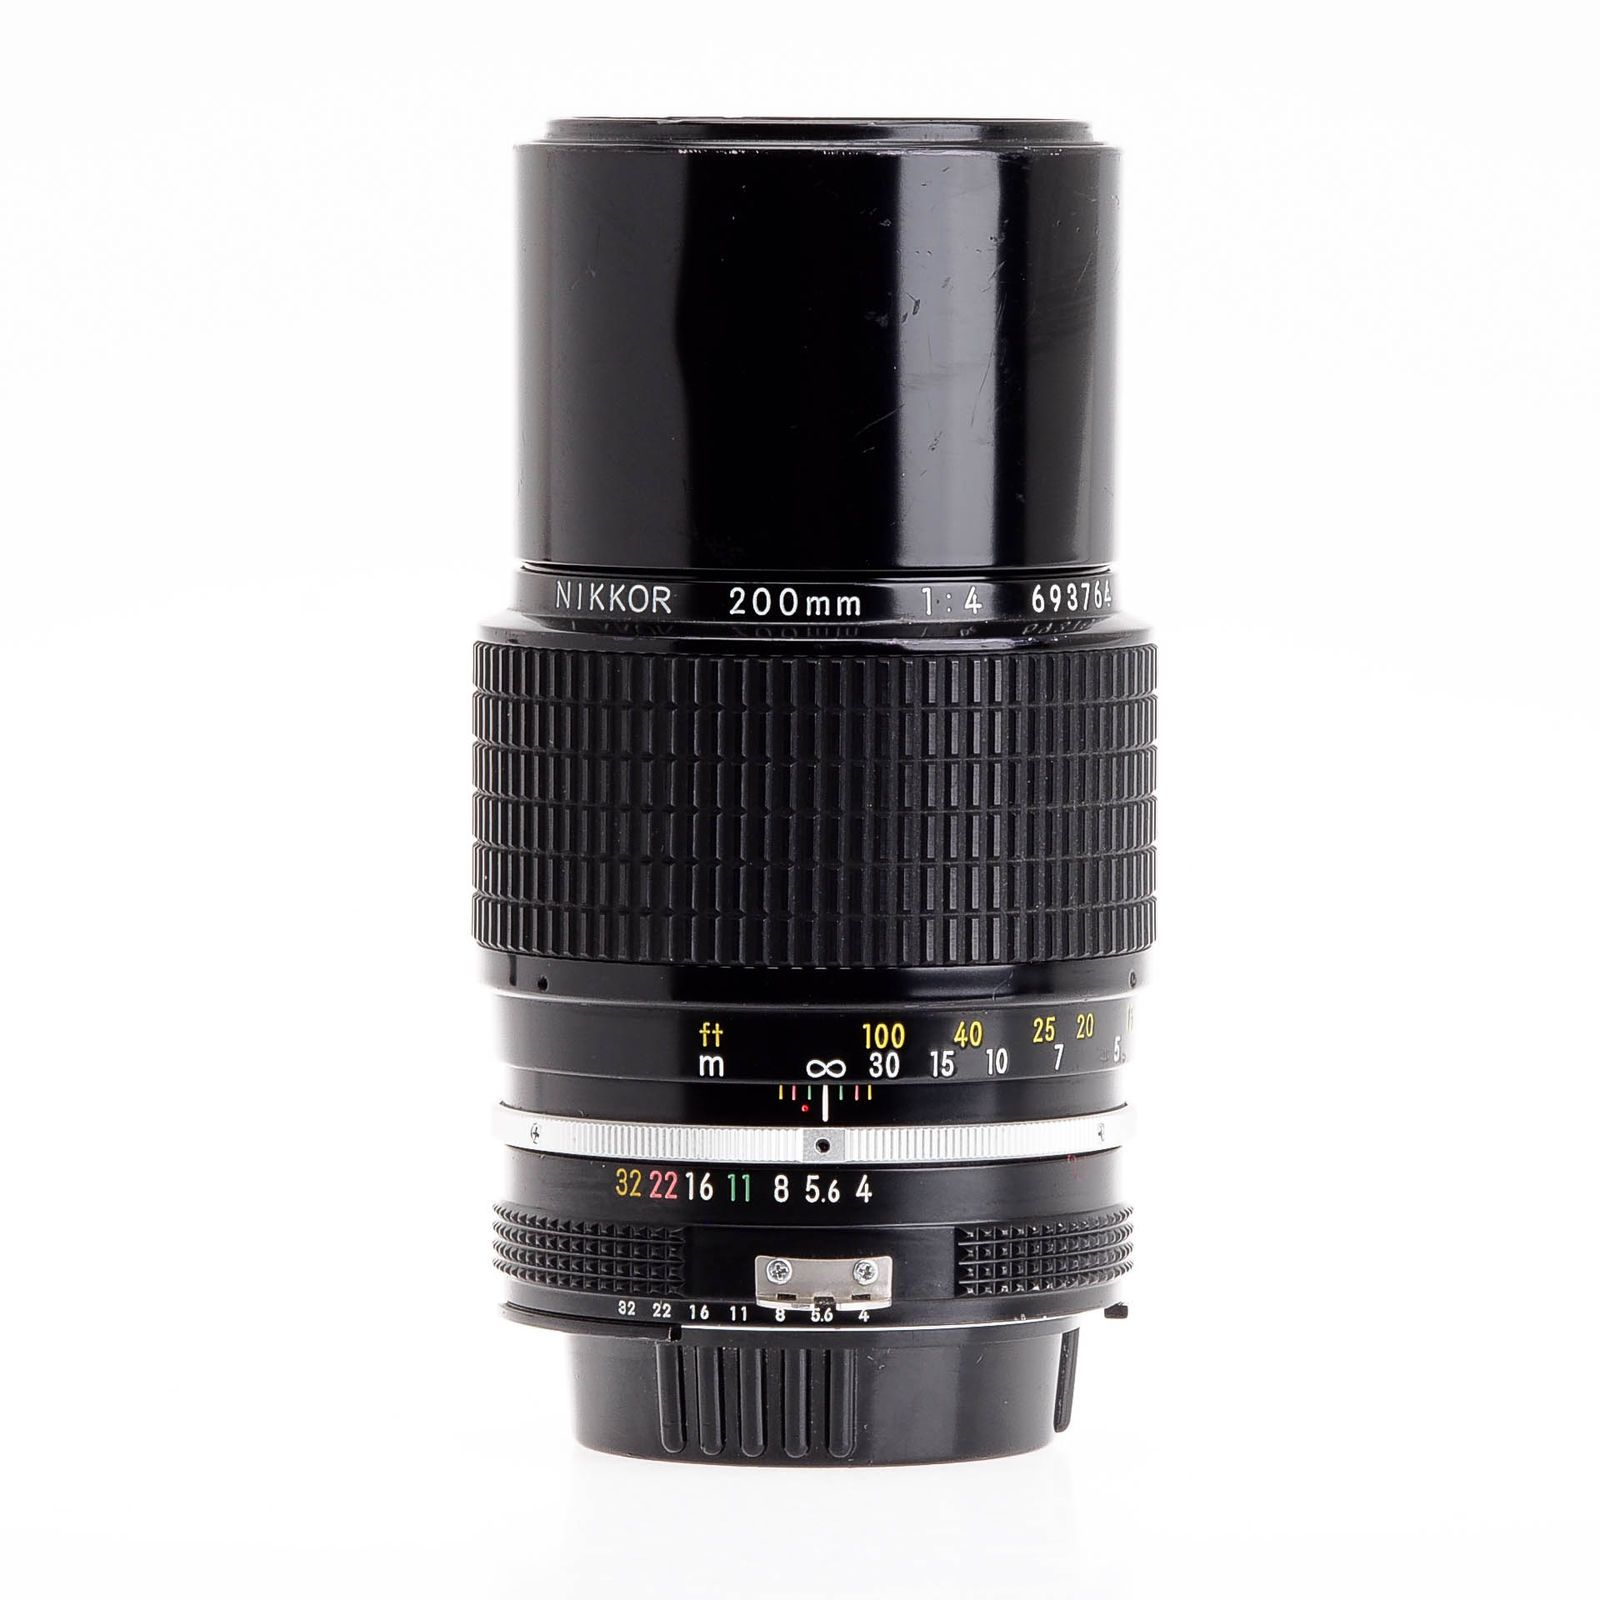 Nikon Nikkor 200mm F4 AI Manual Focus Telephoto Lens